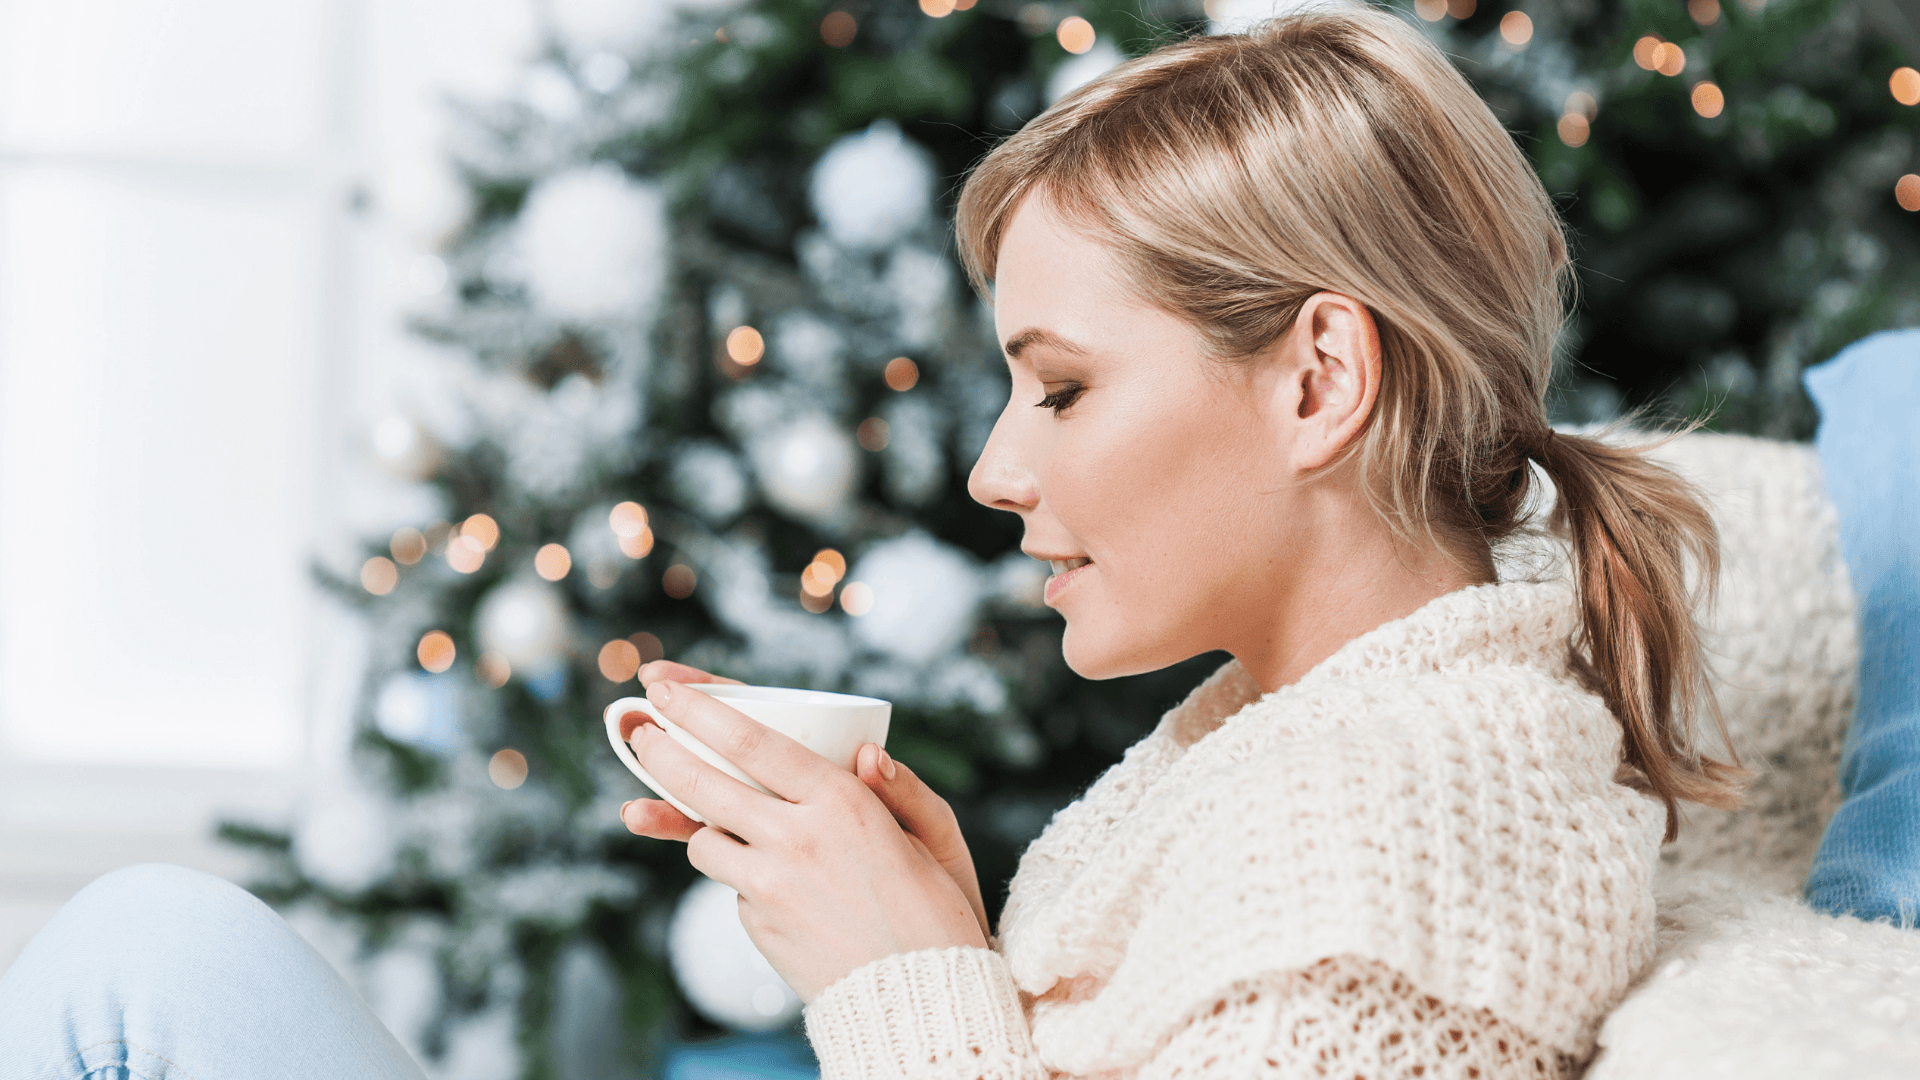 Caring for Yourself During the Holidays